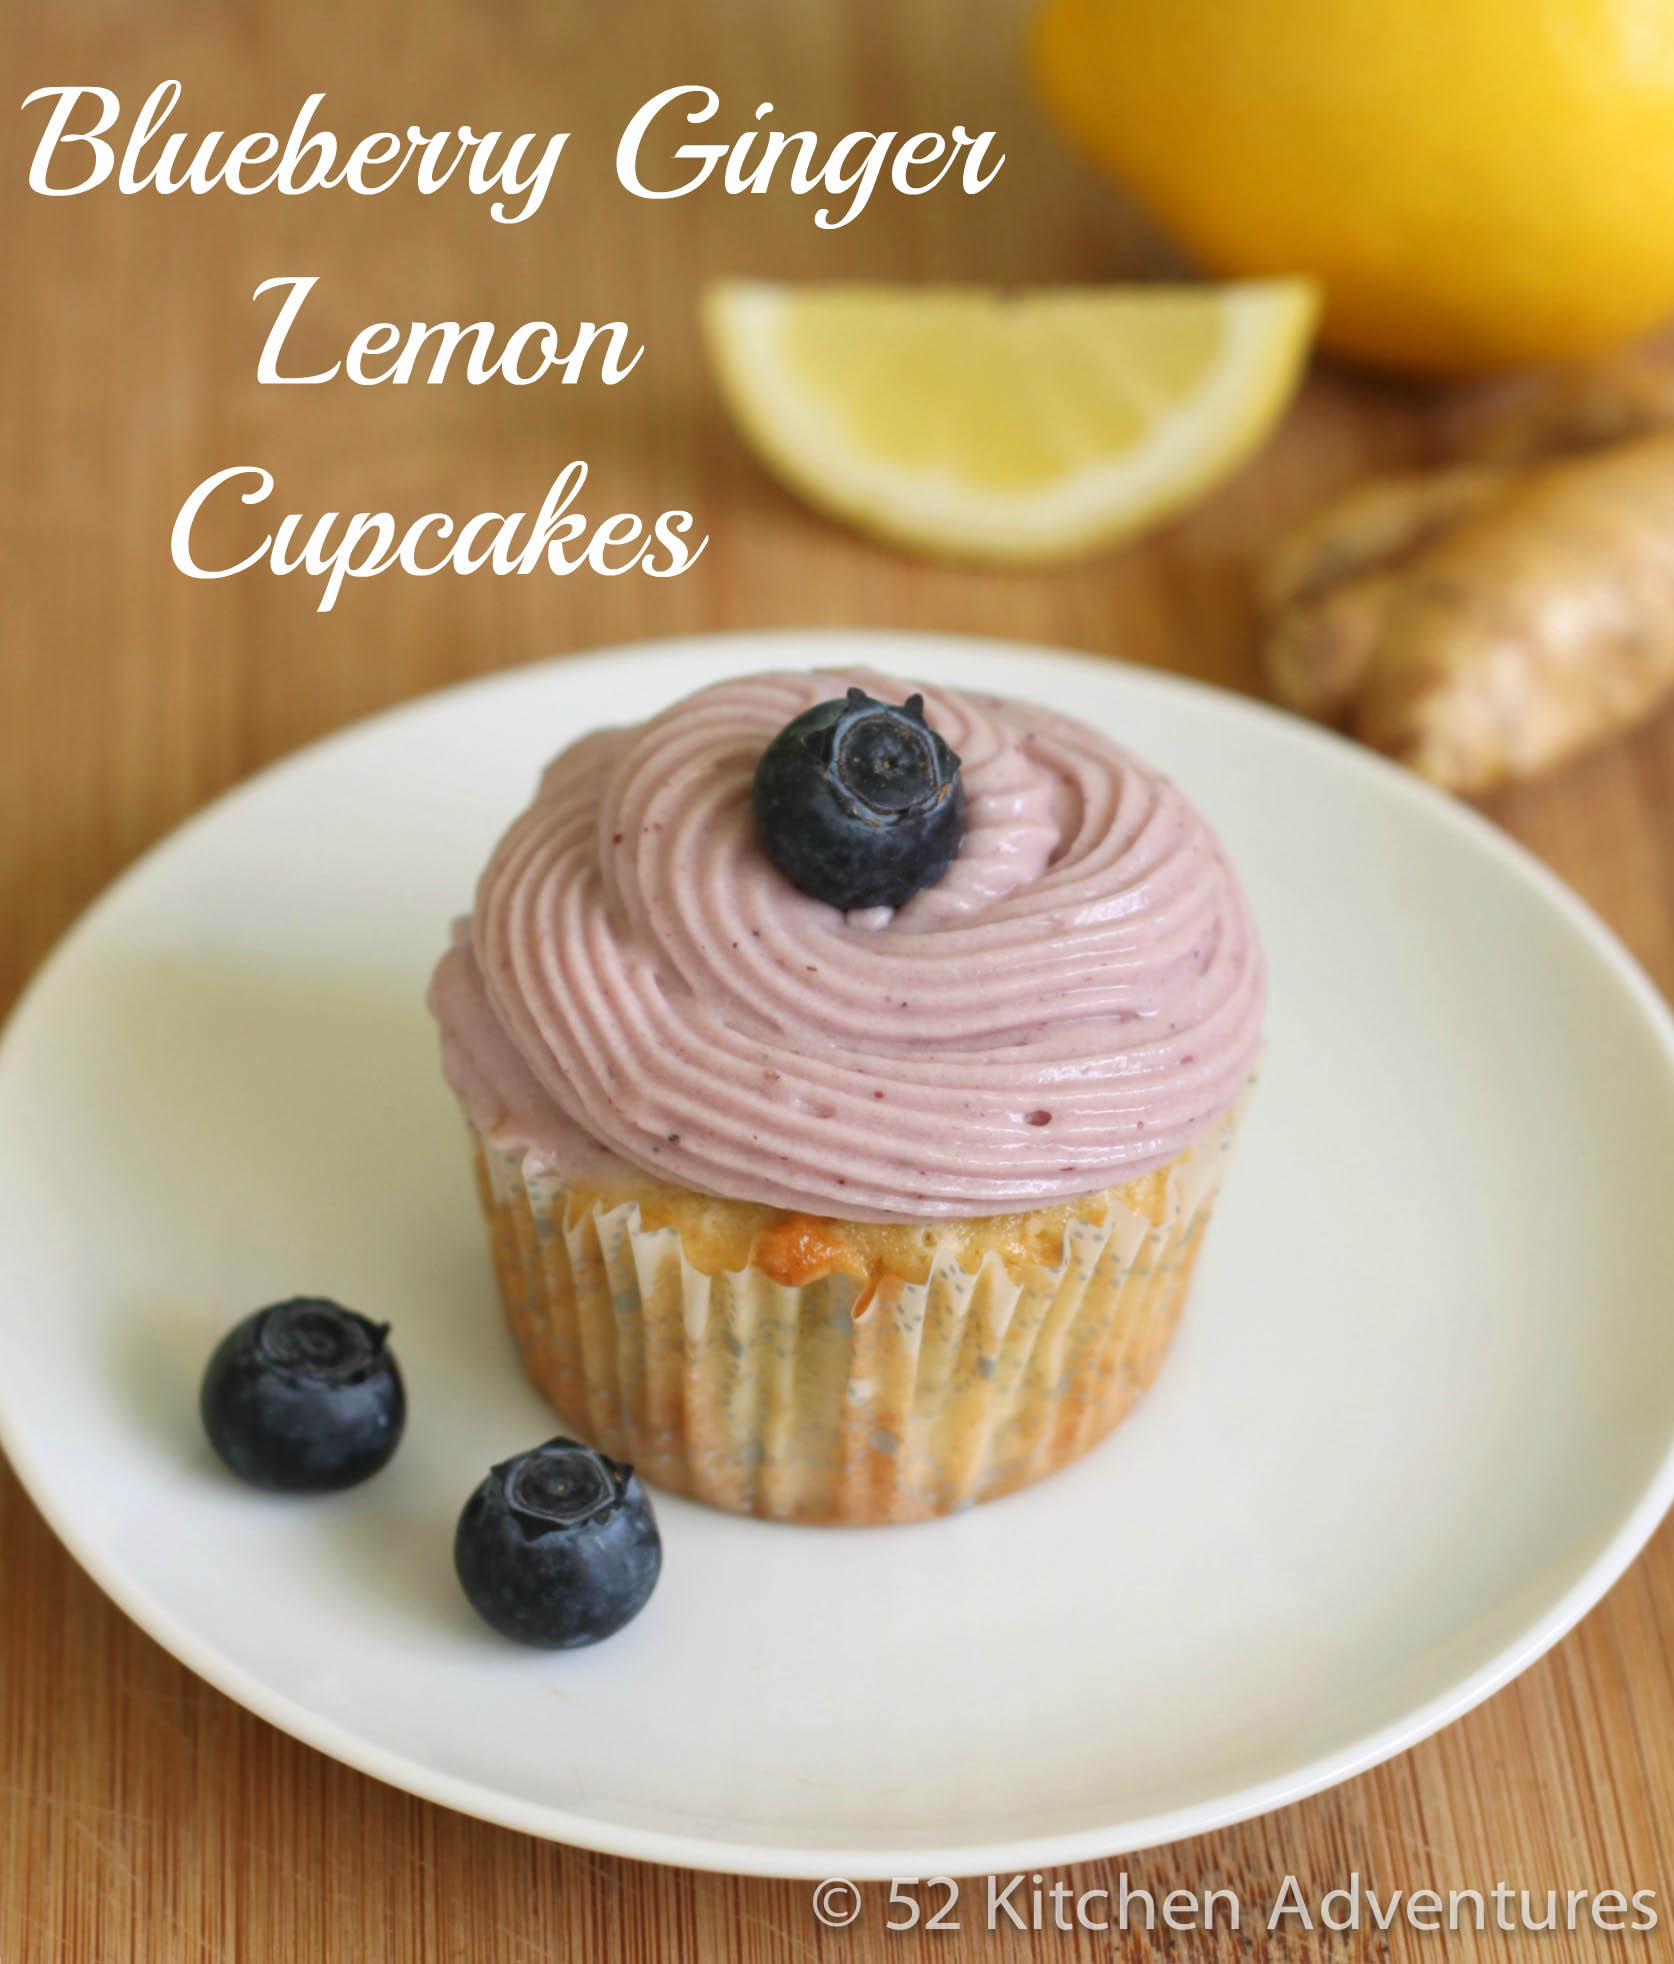 Recipe: Blueberry ginger lemon cupcakes